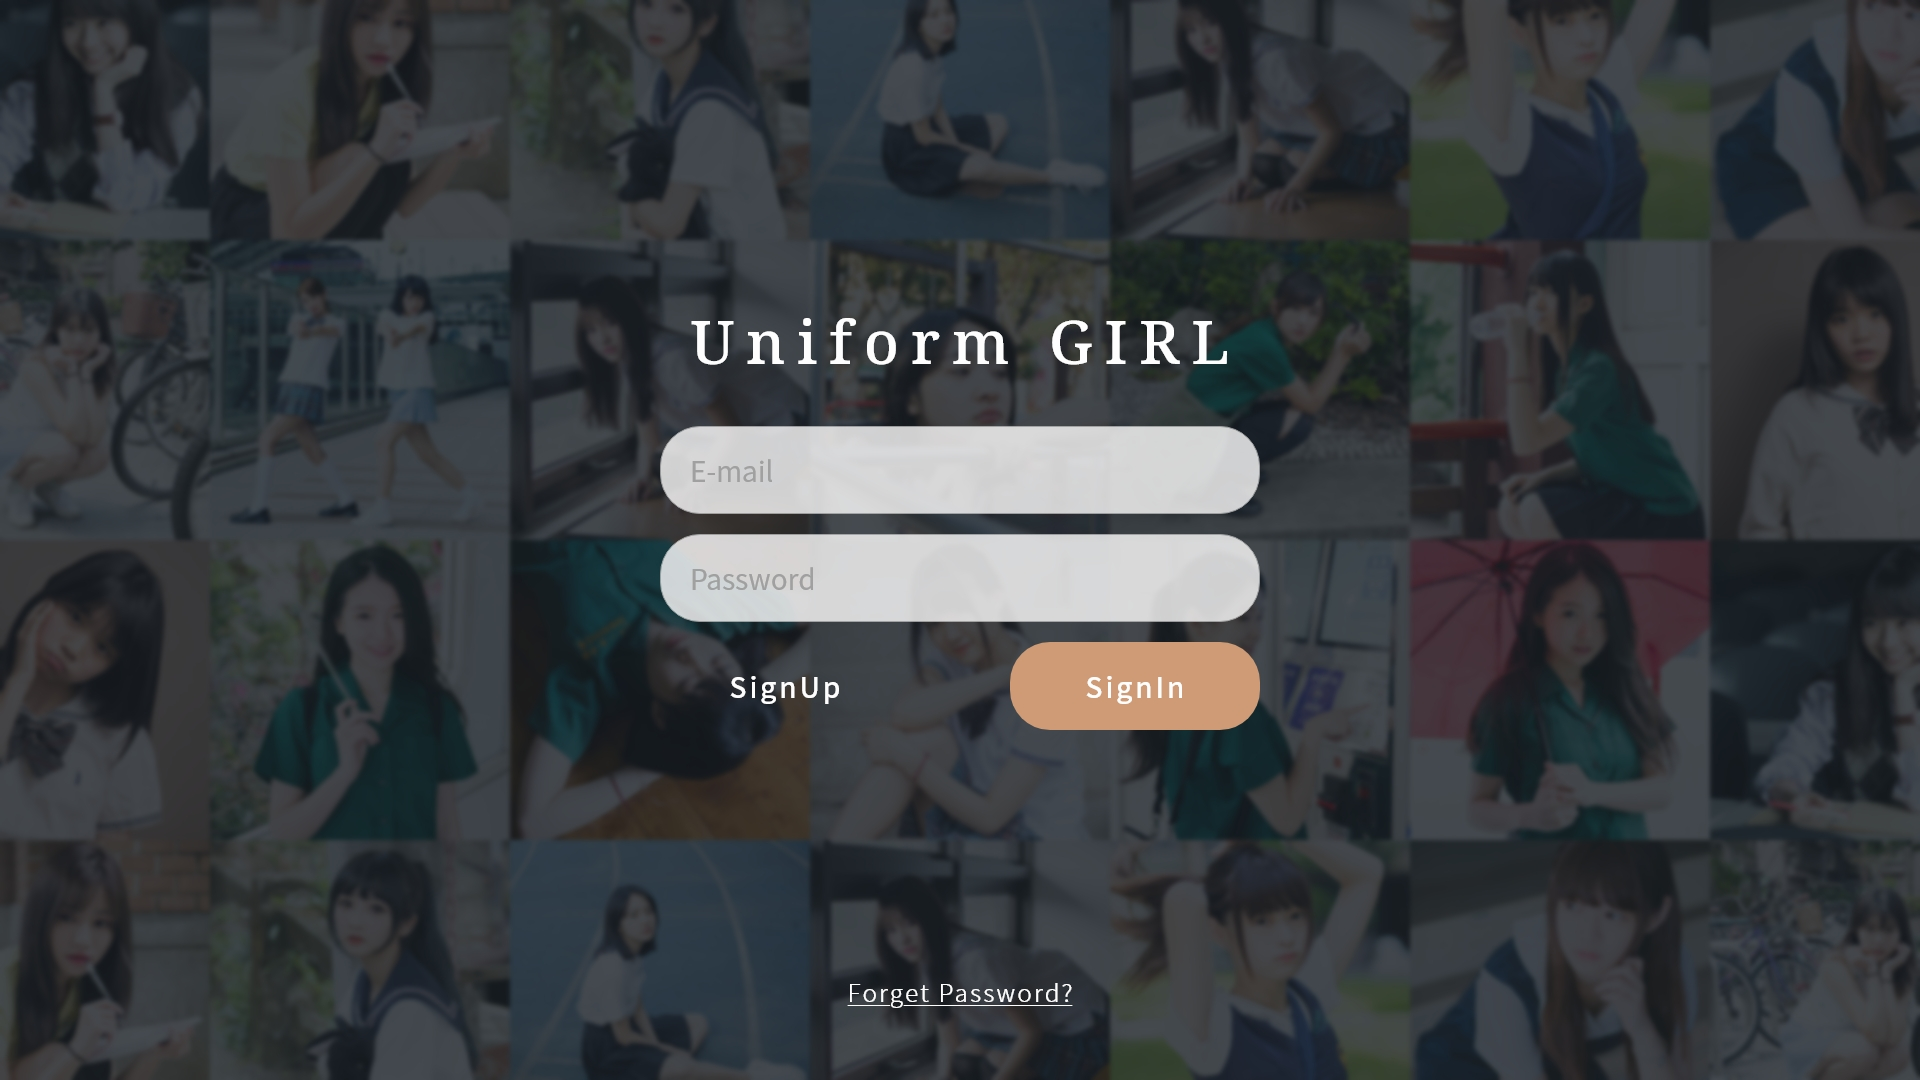 #4 Uniform Girls Sign In Page